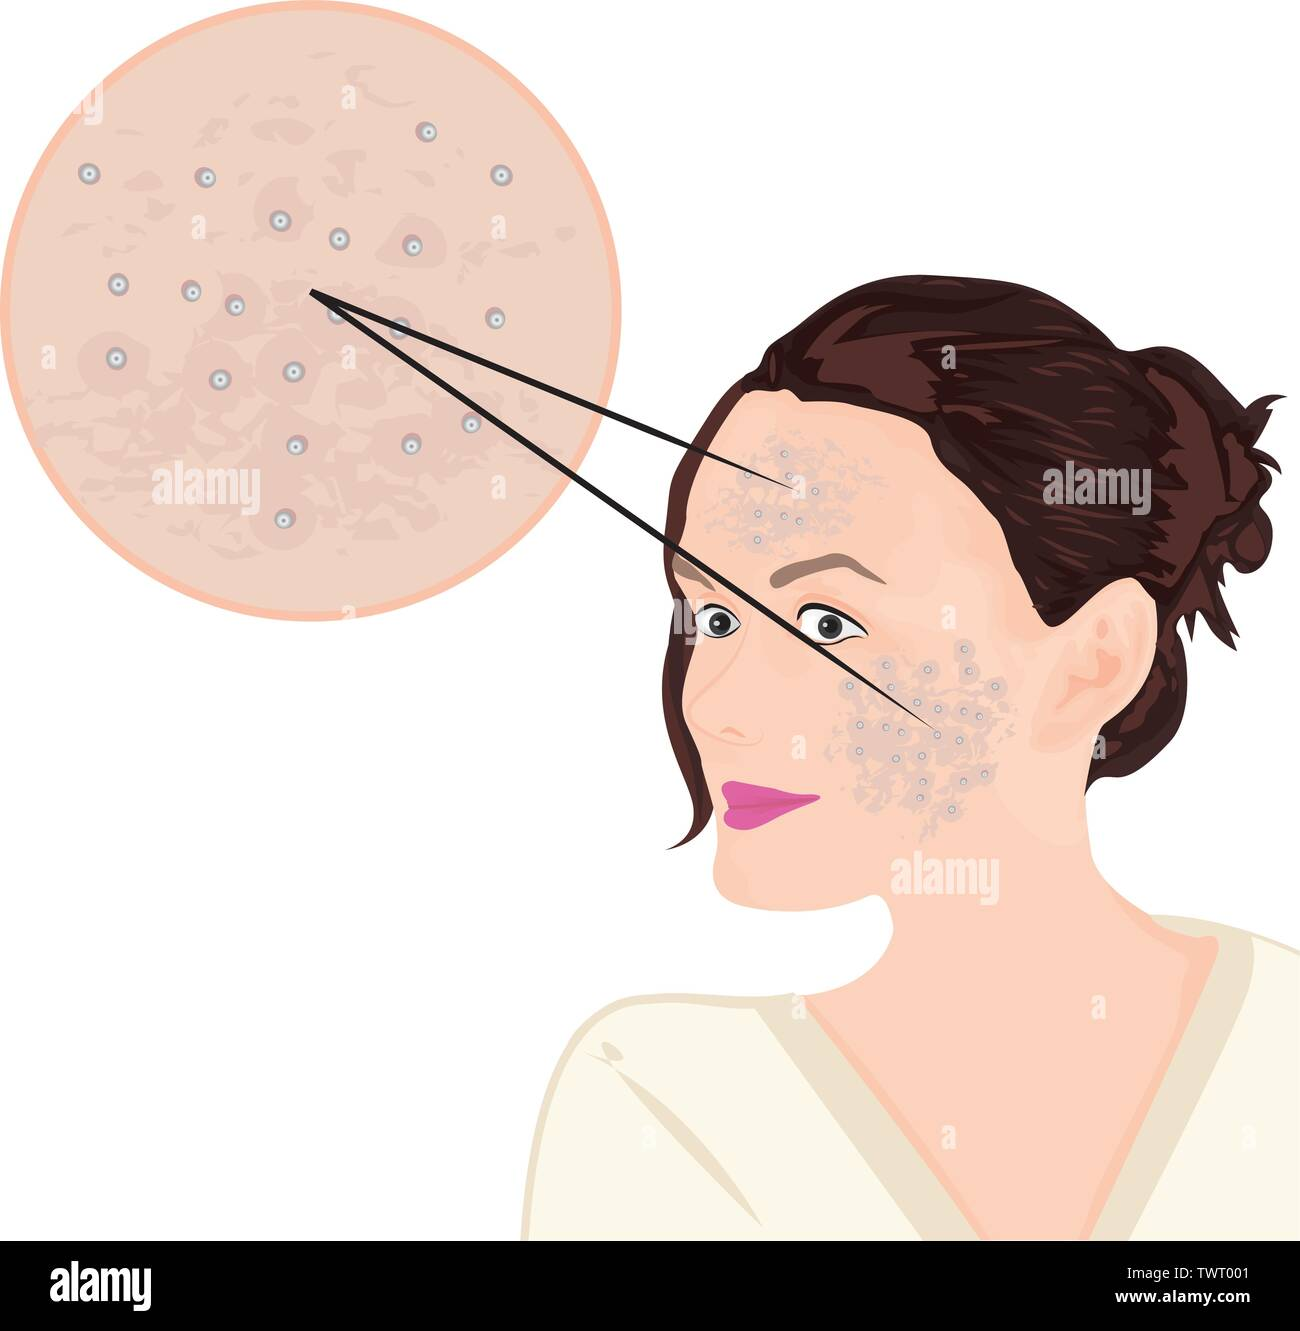 acne on a face vector illustration showing skin problem - stock image